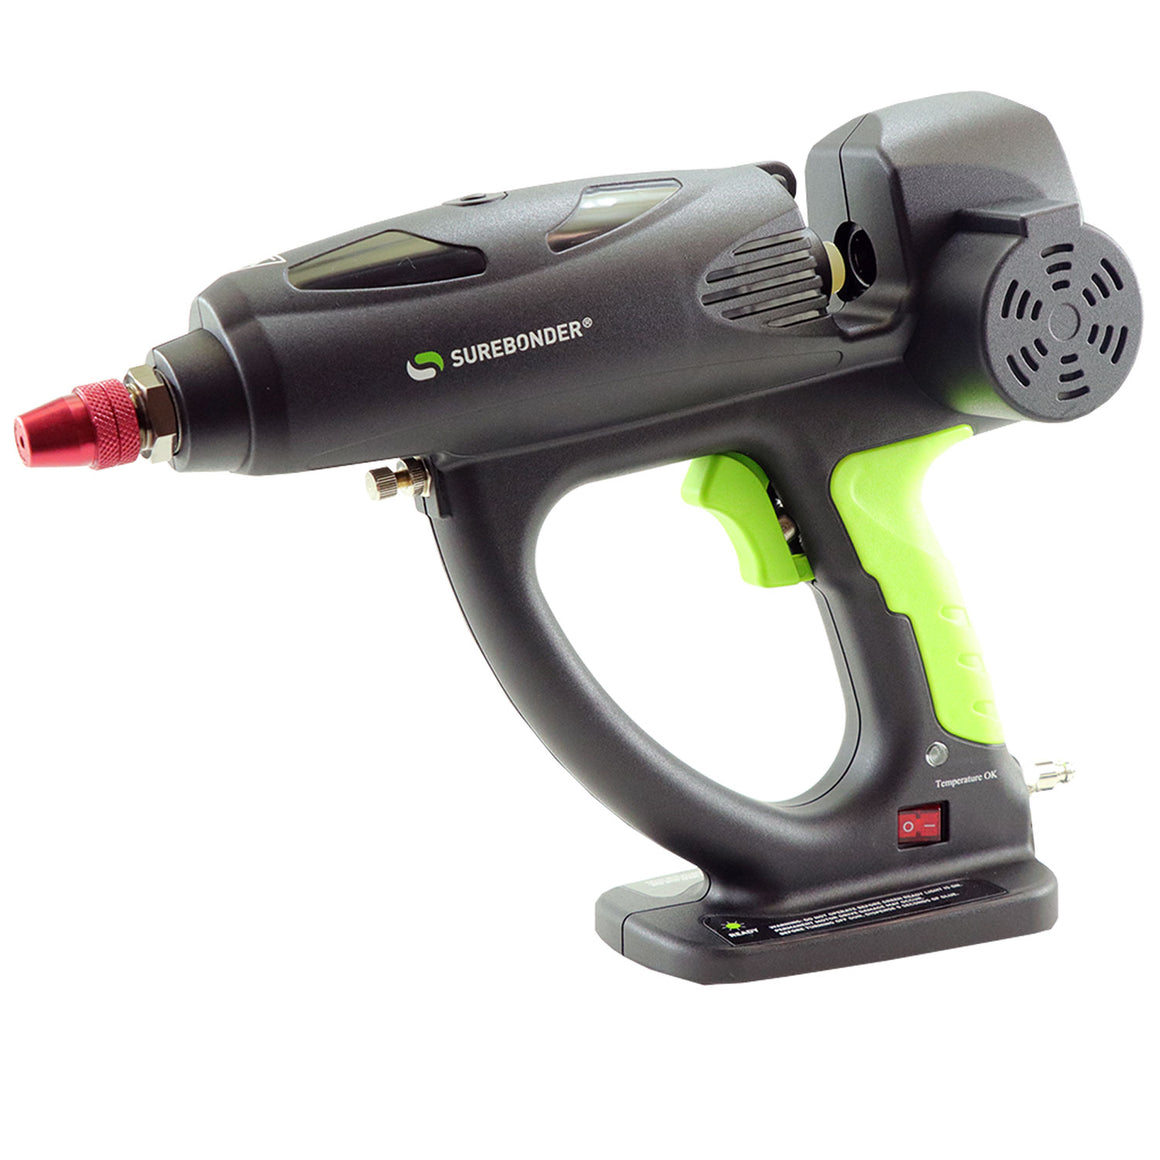 "Surebonder Spray-500 500 Watt Hot Melt Spray Glue Gun - Uses oversize, 5/8"" glue sticks."